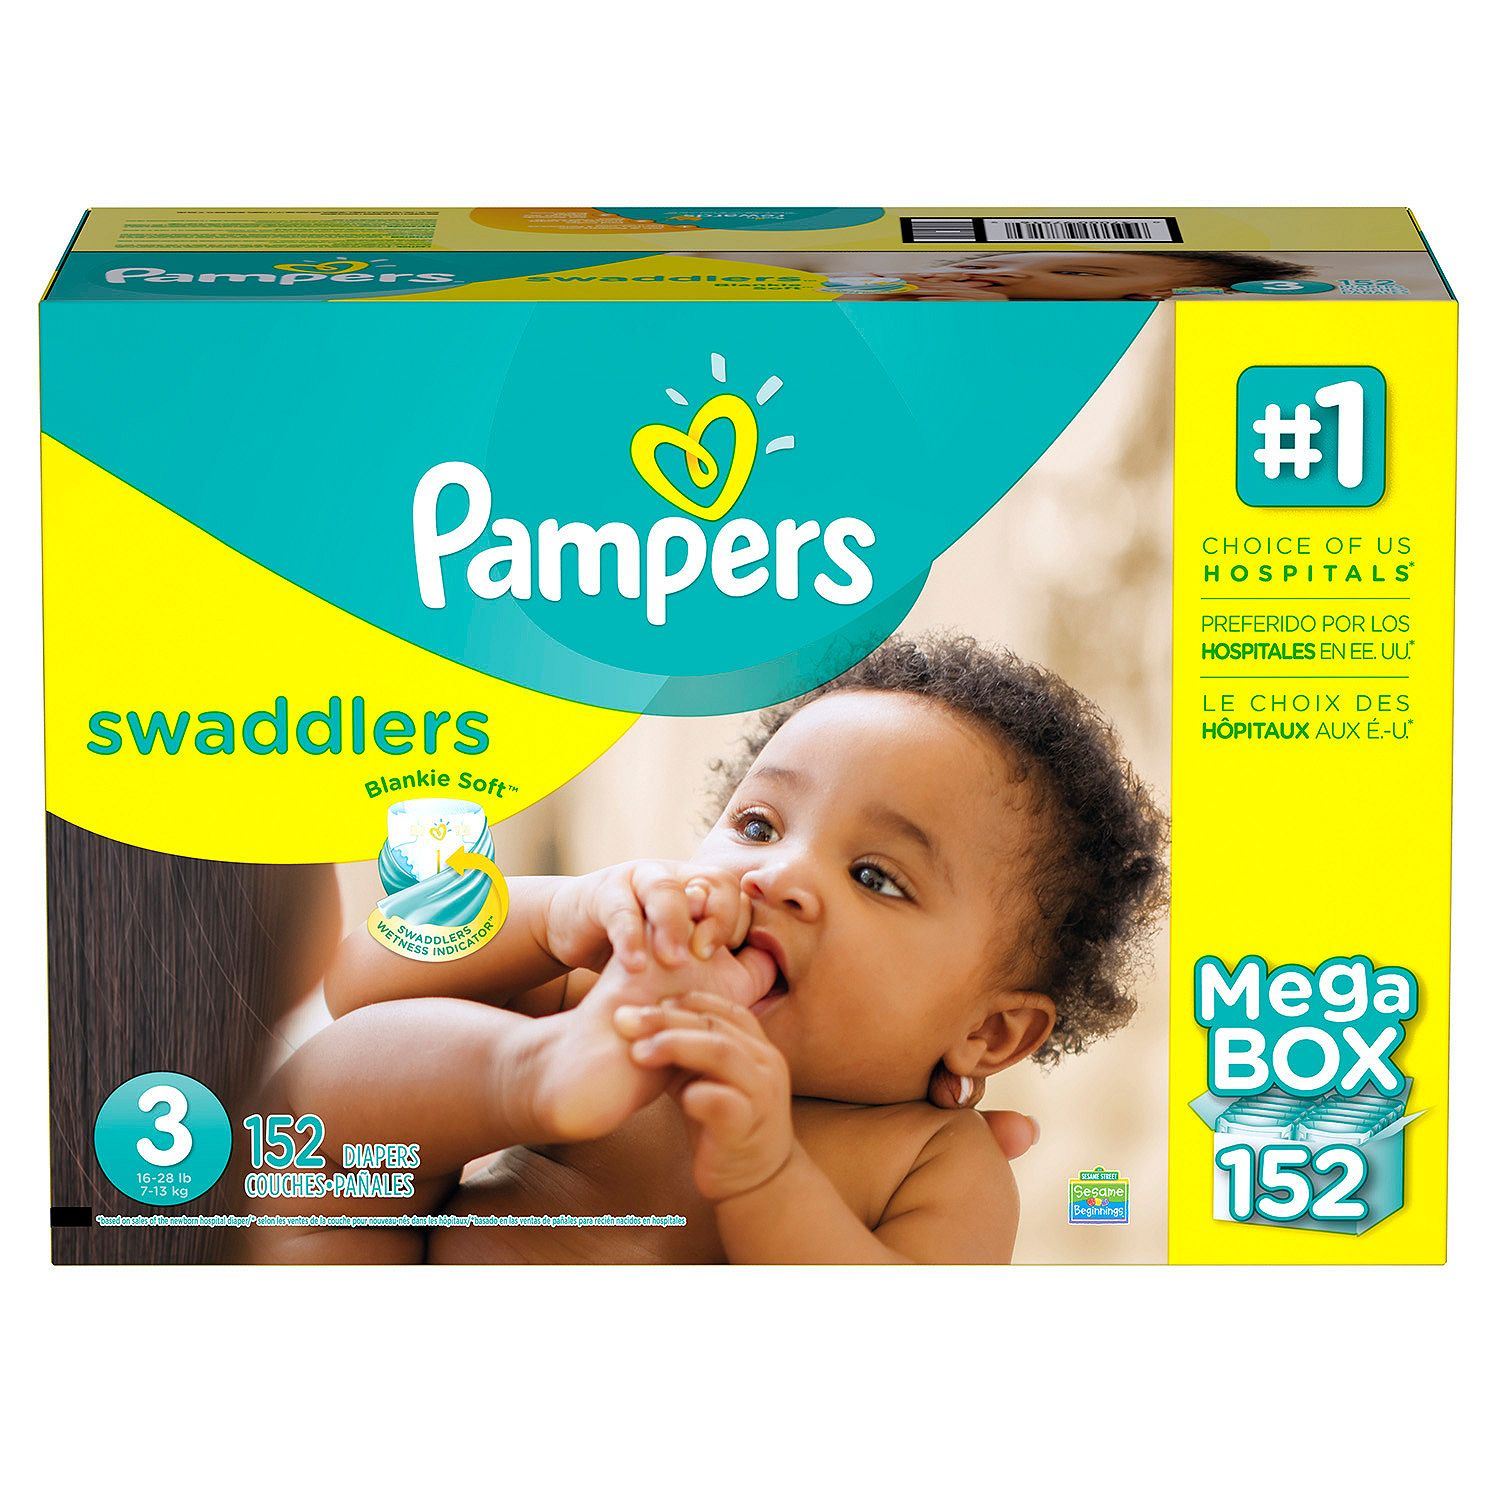 Pampers' Swaddlers Diapers Size 3 - 152 ct. ( Weight 16- 28 lb.) - Bulk Qty, Free Shipping - Comfortable, Soft, No leaking & Good nite Diapers